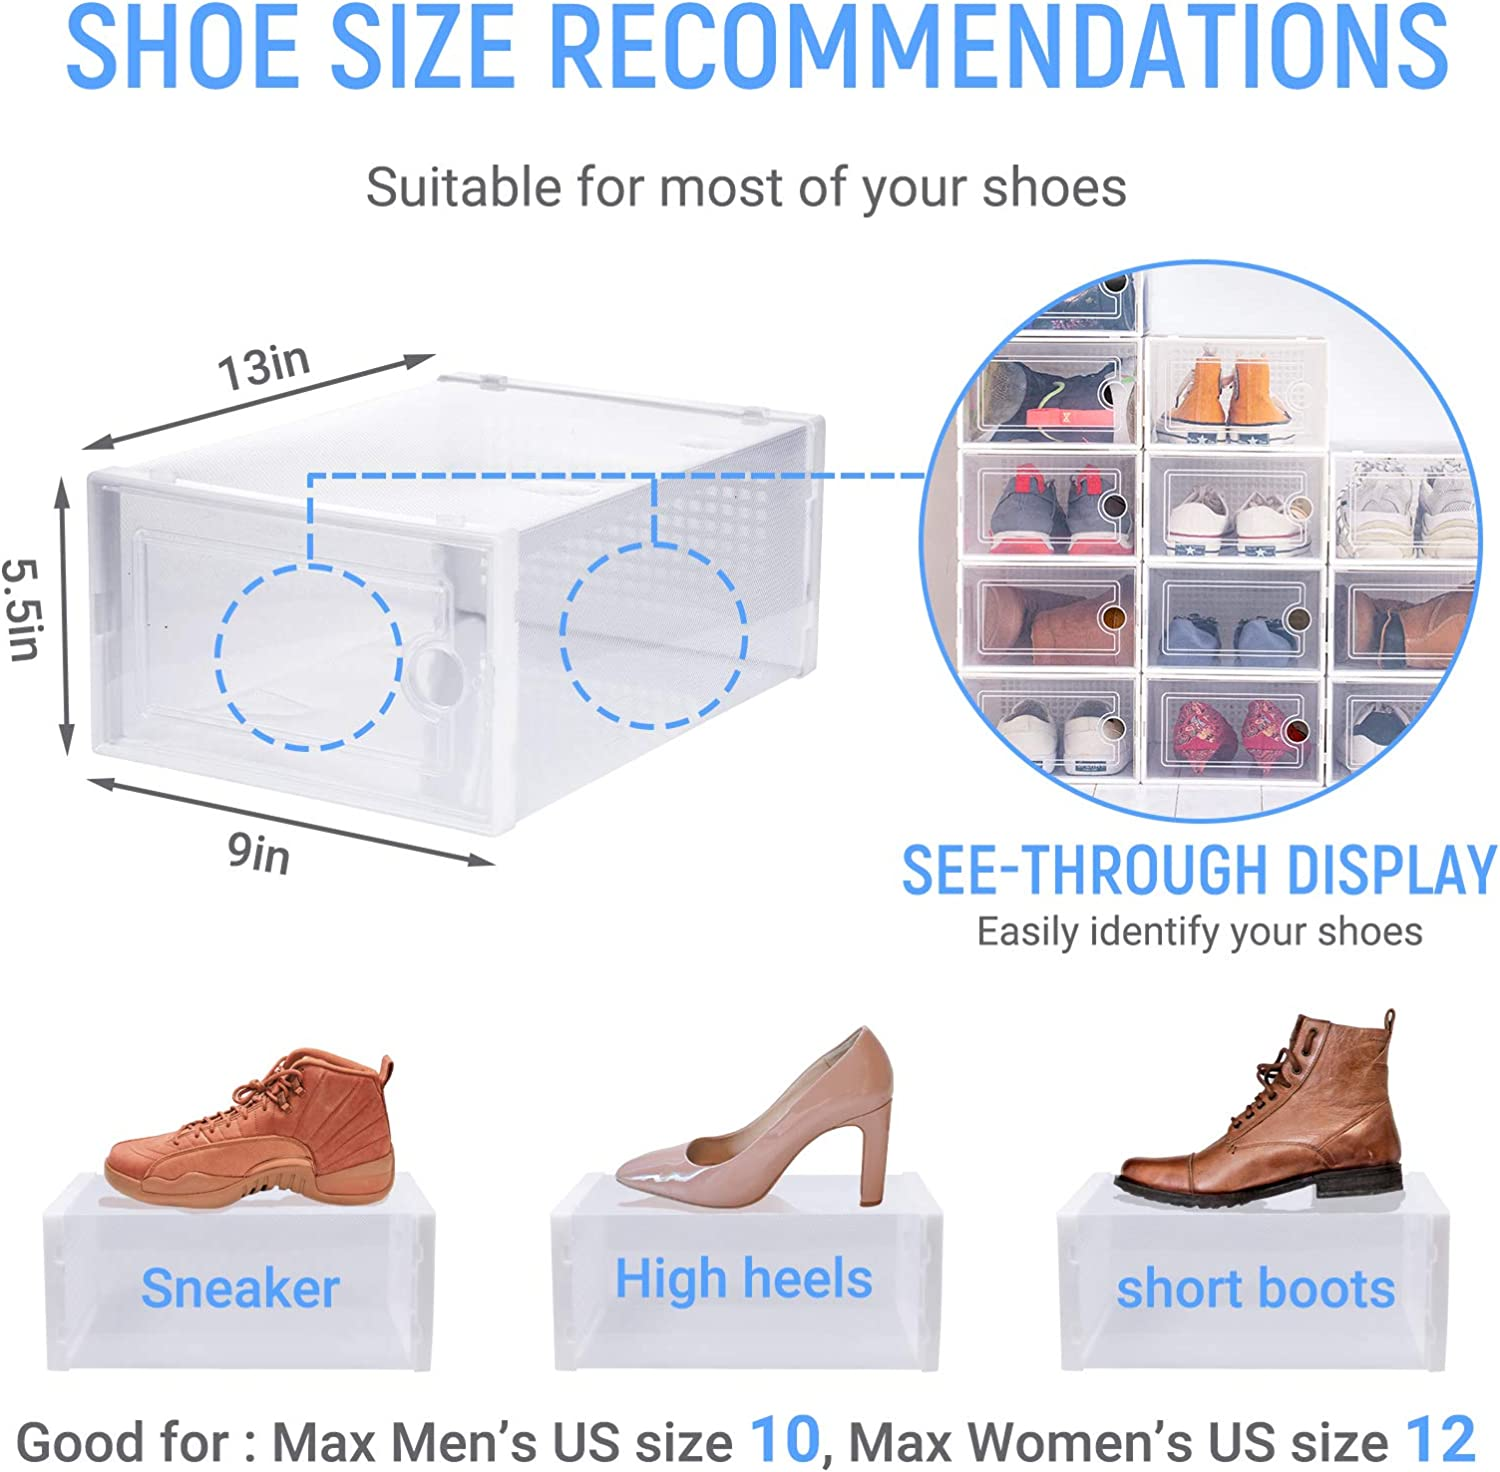 WALL QMER 12 Pack Shoe Boxes Clear Plastic Stackable Storage Boxes 13 x 9 x 5.5in Front Opening Shoe Holder Containers Shoe Box for Closet Shoe Organizer with Lids